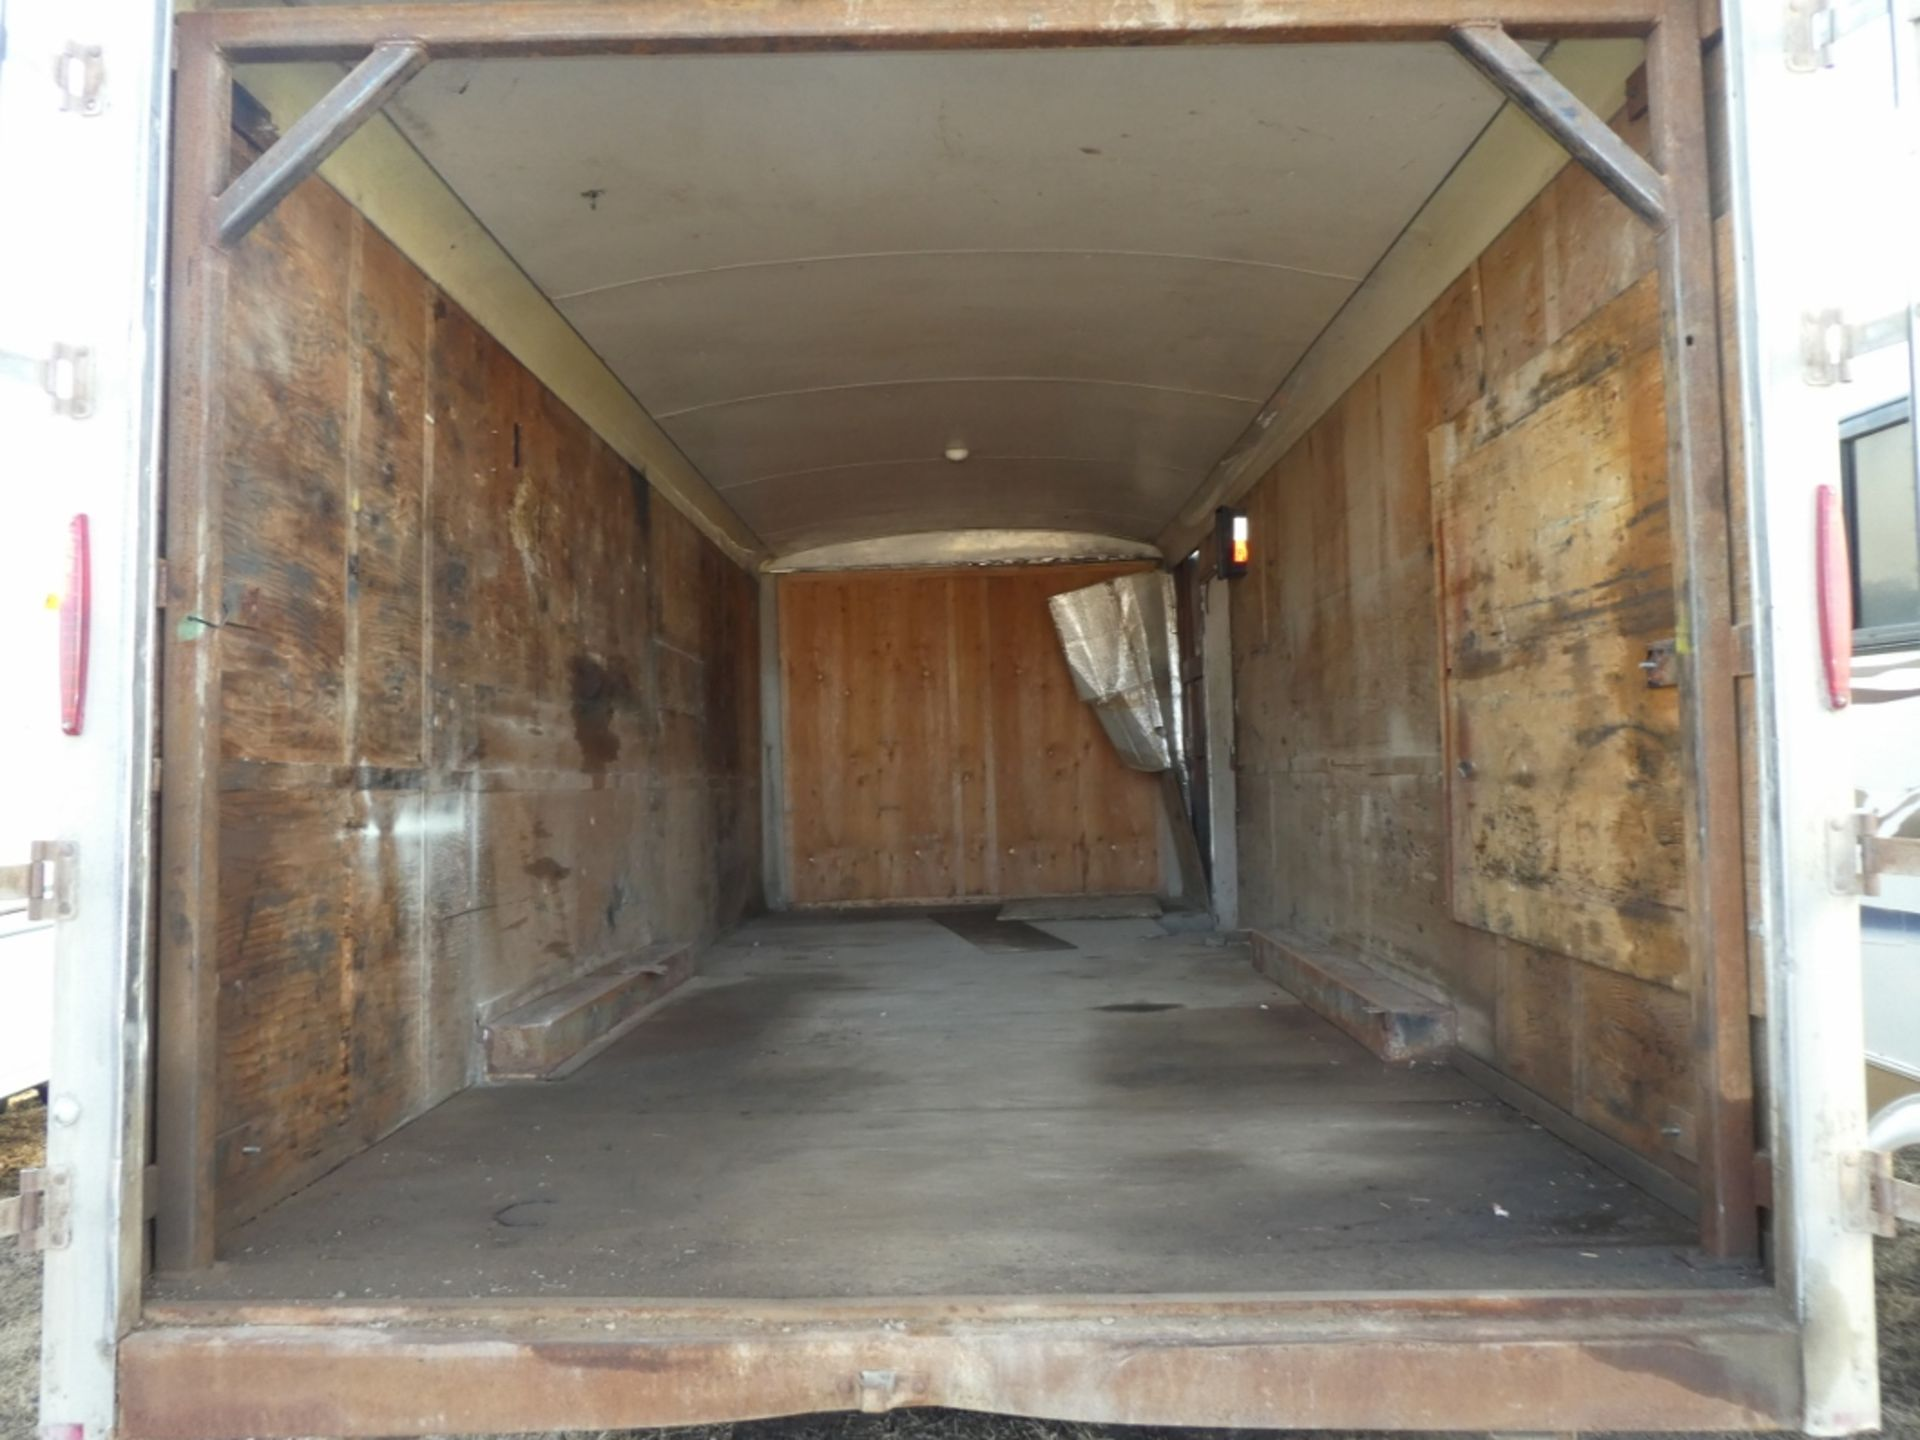 04/2012 TNT TRAILER - 20 FT T/A ENCLOSED TRAILER W/REAR BARN DOORS, S/N 5WBBE20226CW0058005 - Image 5 of 7